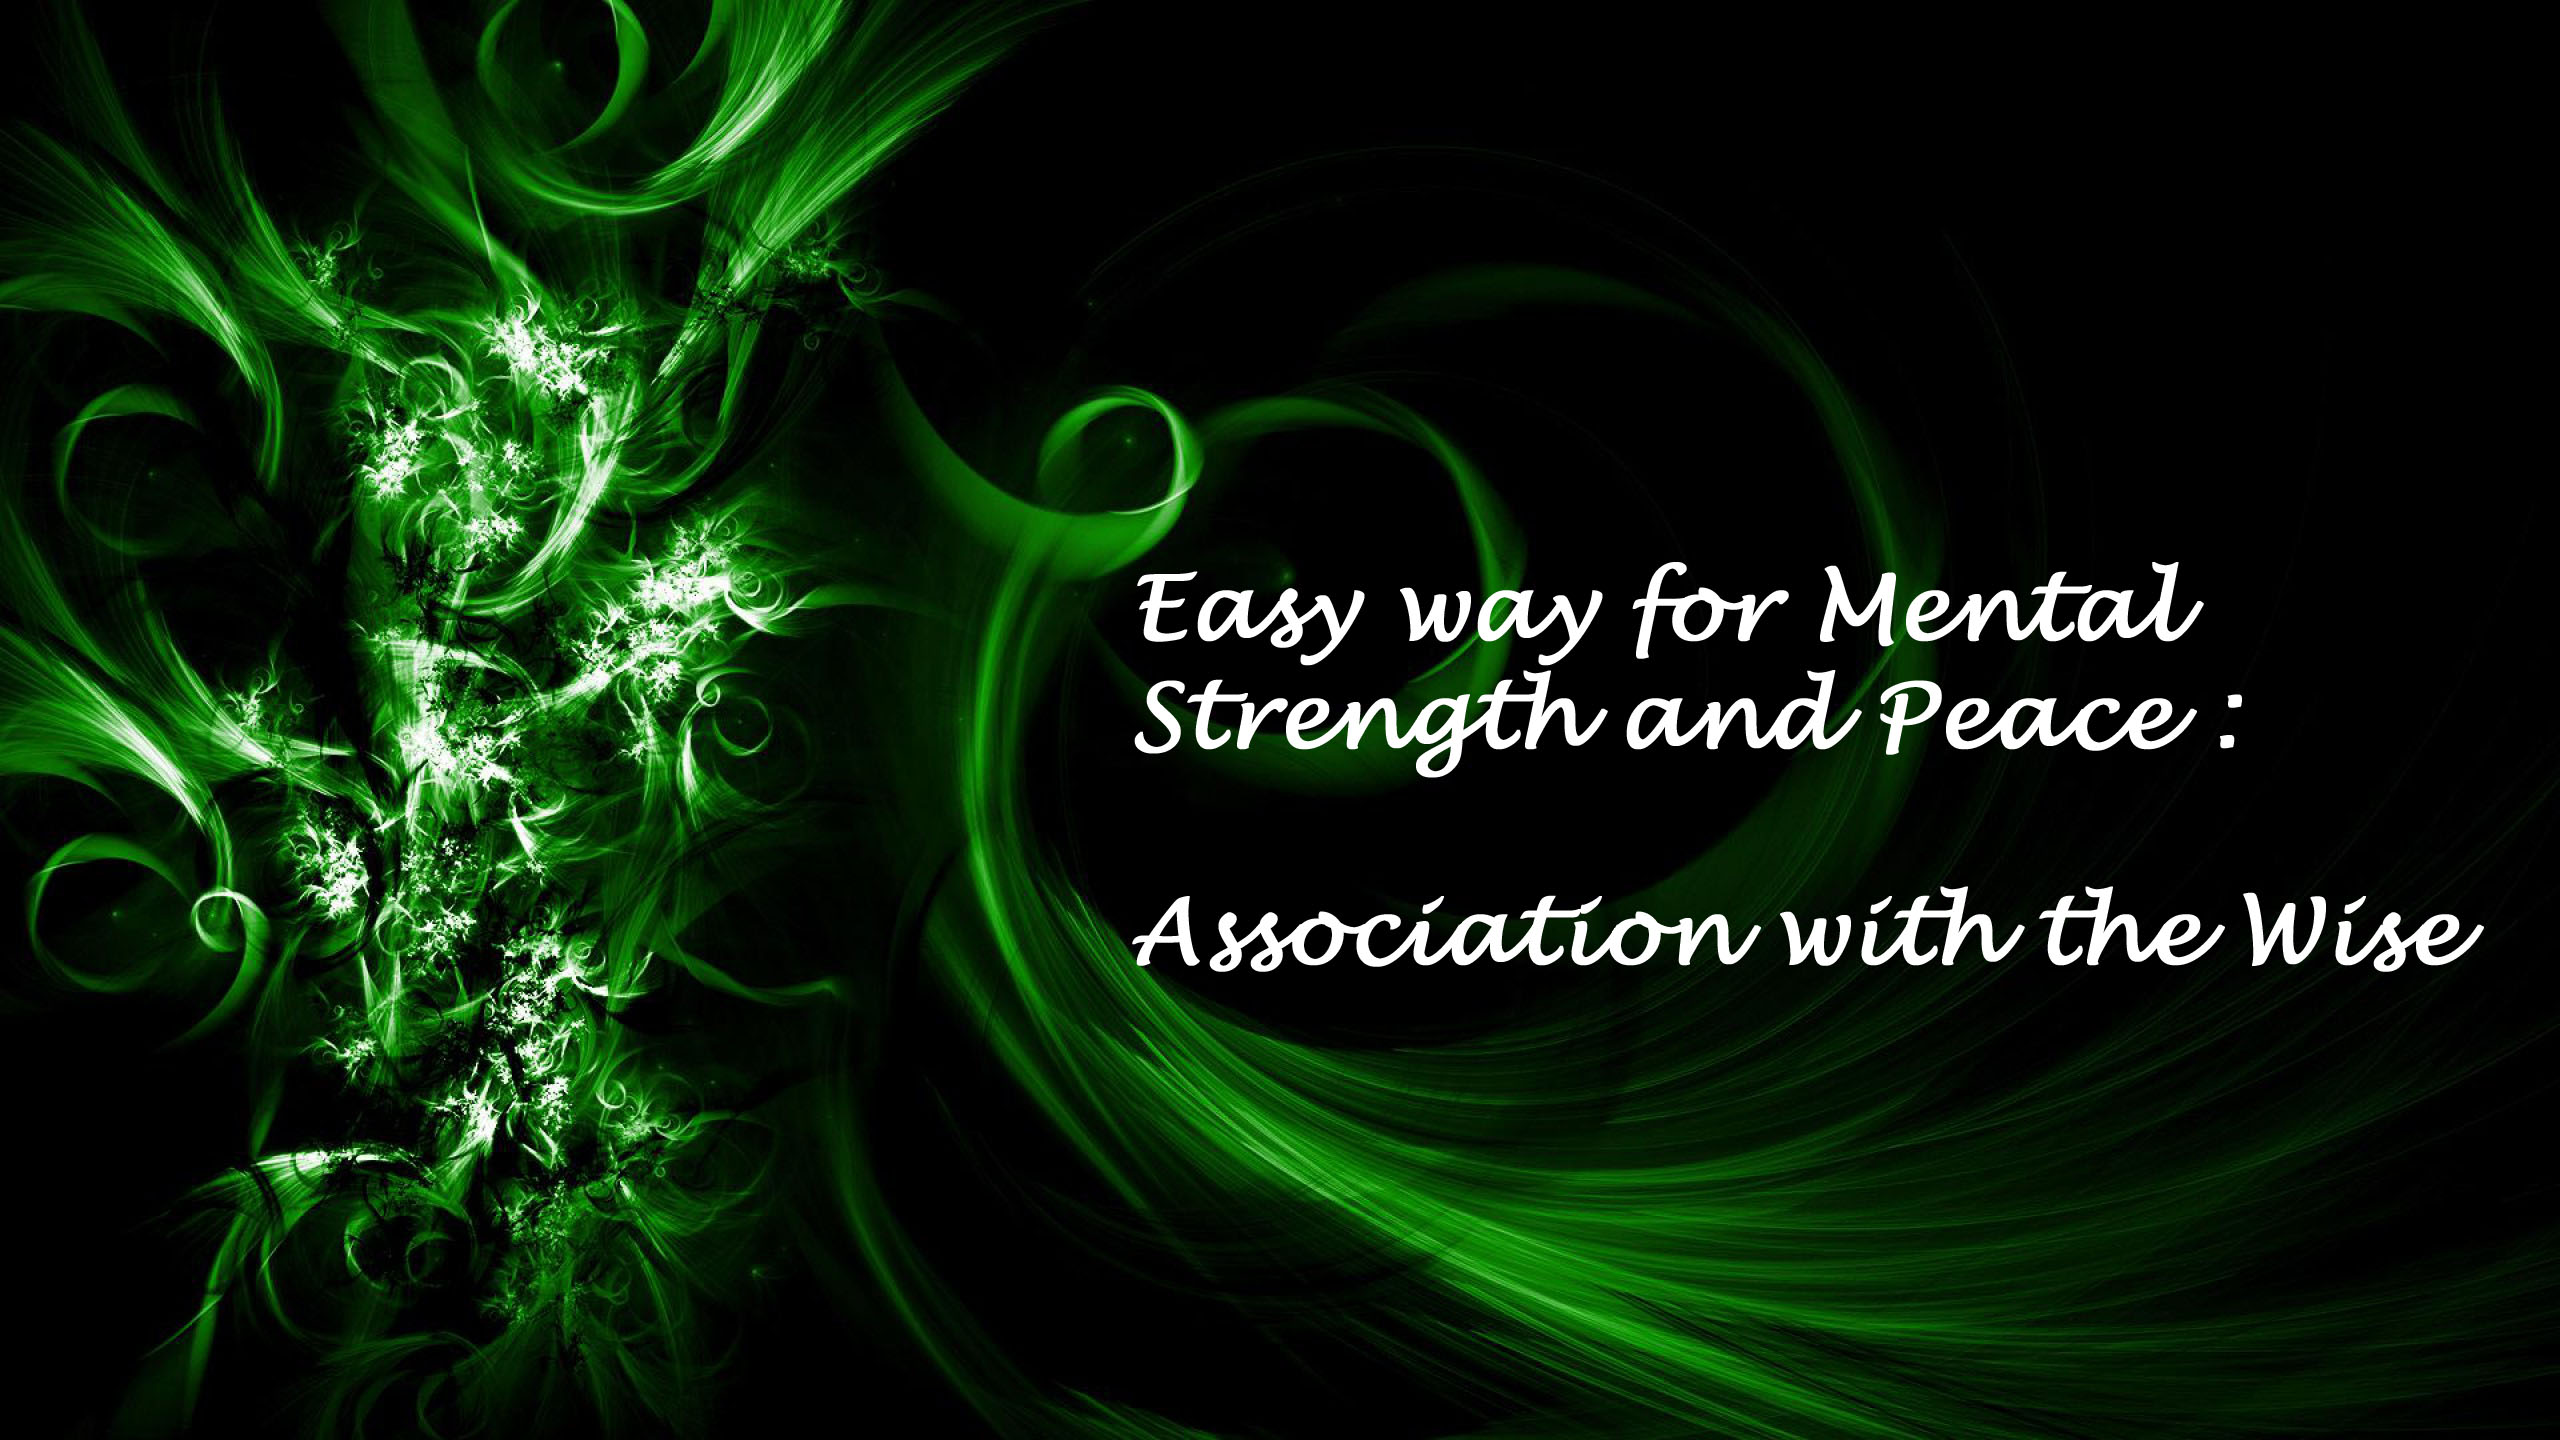 Easy way for mental strength and peace